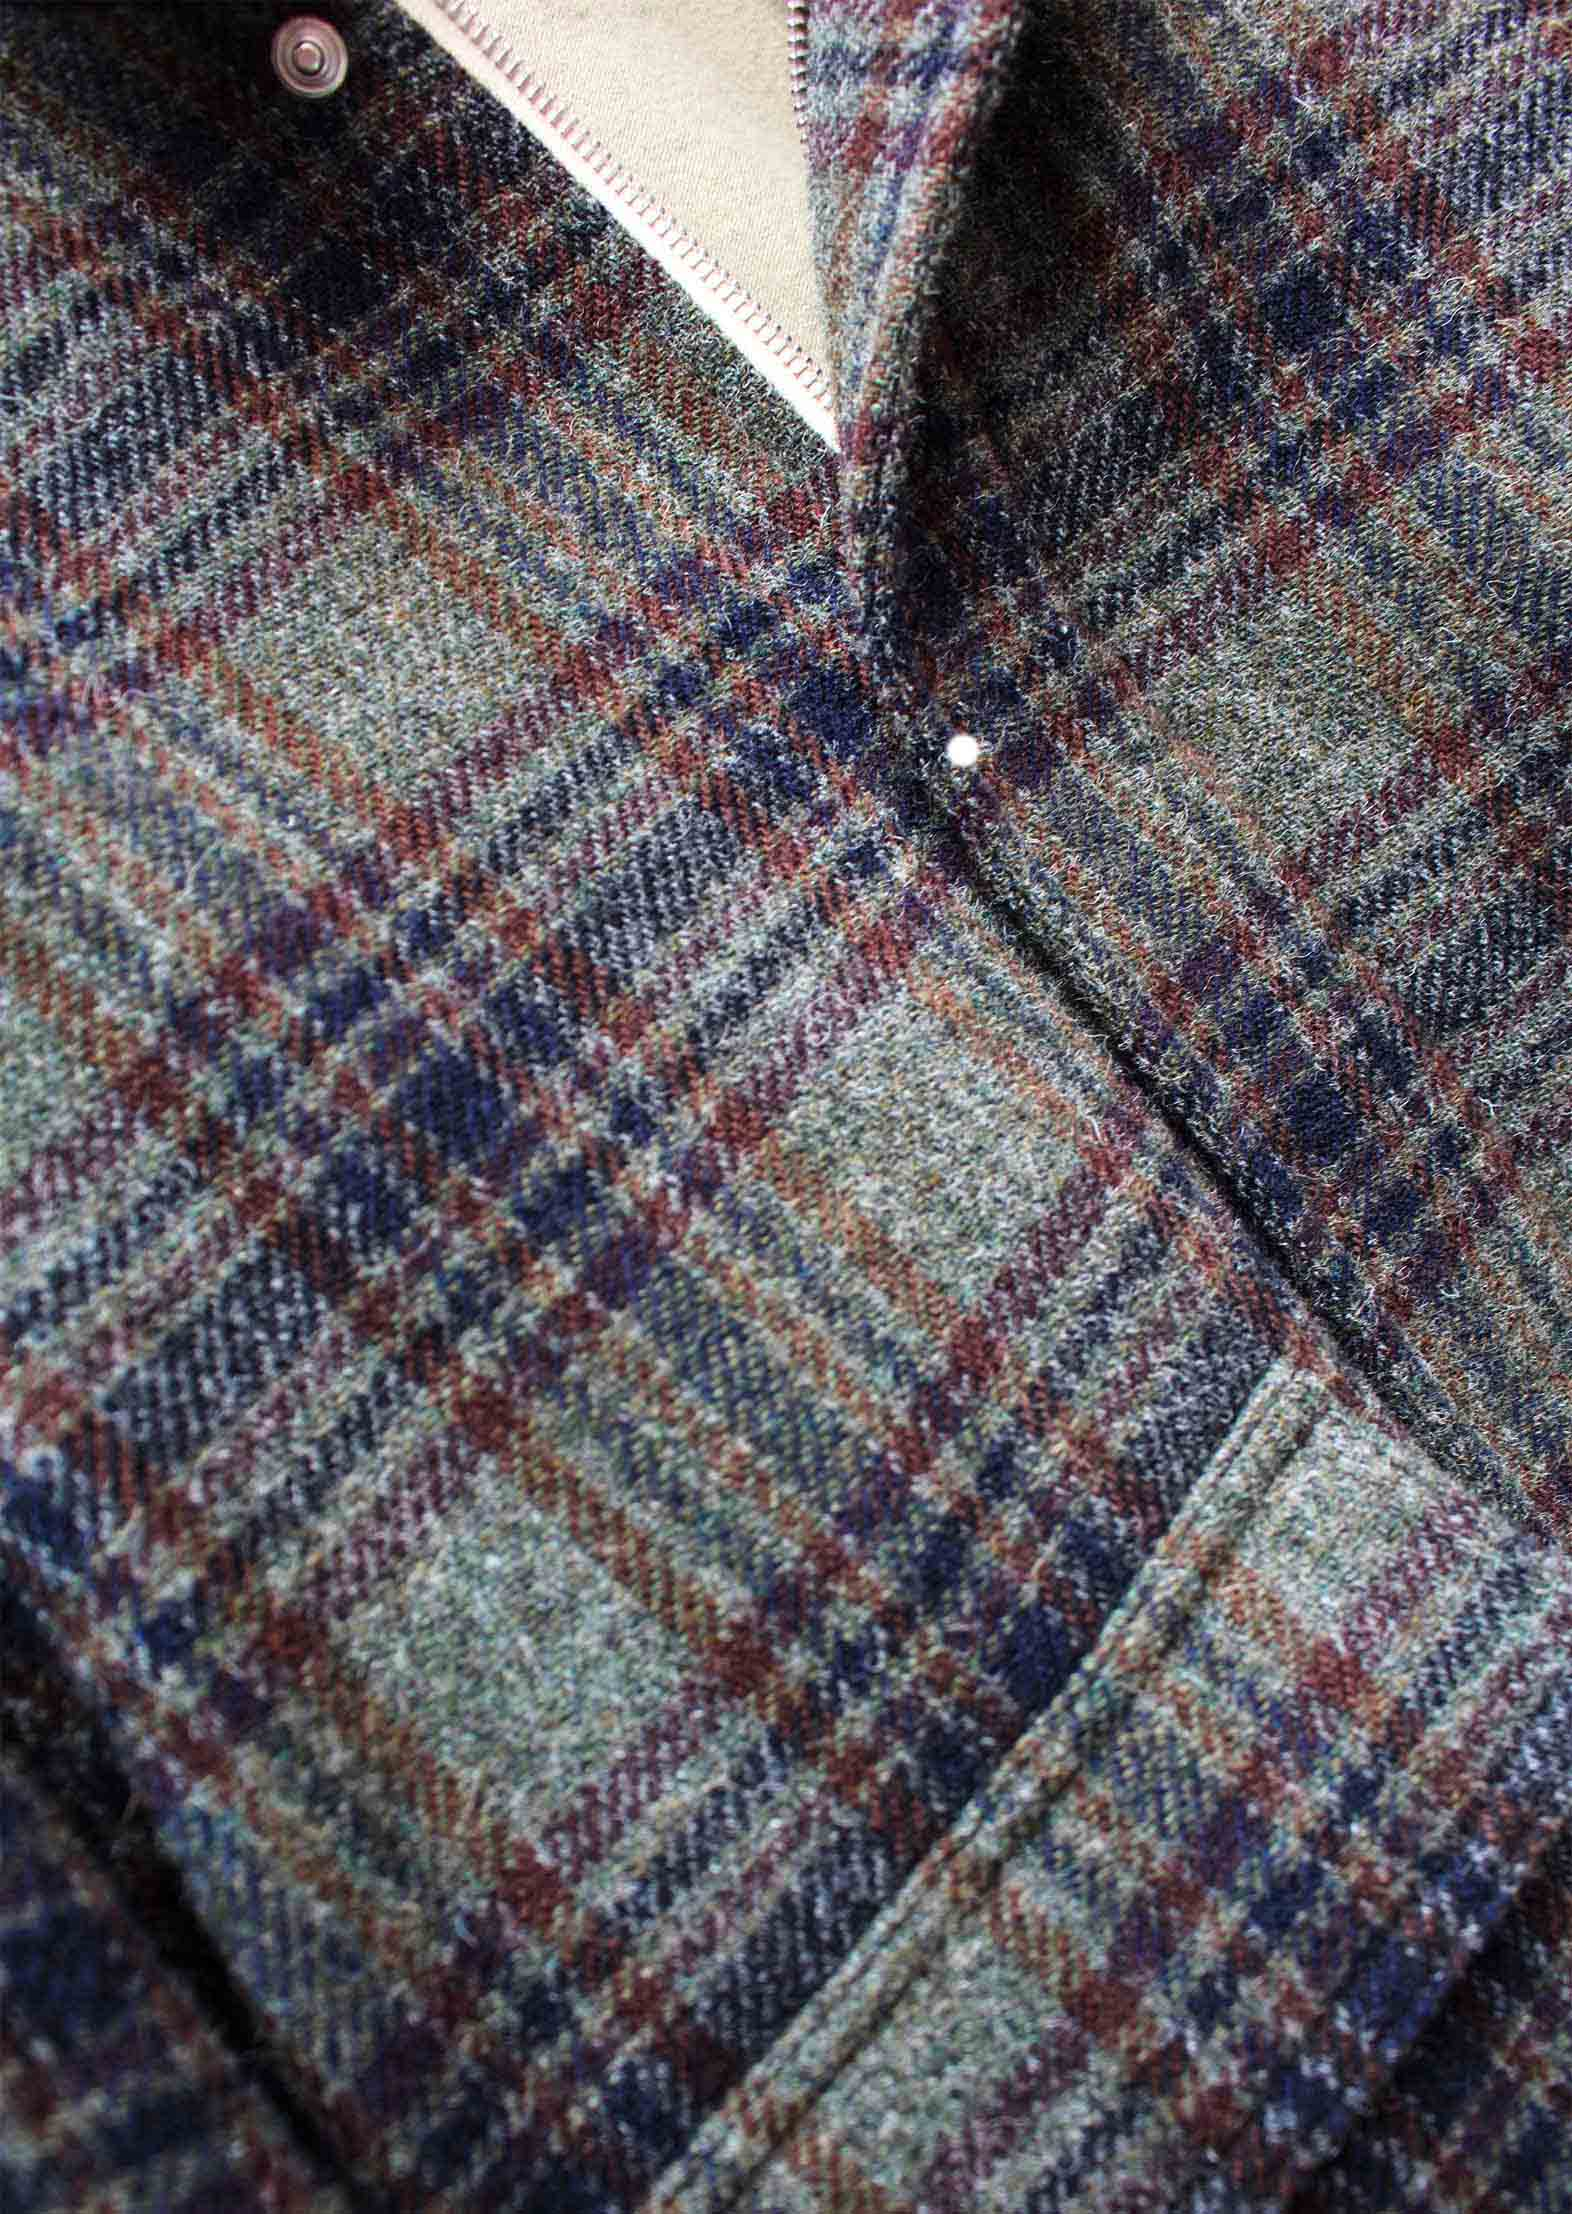 Aviator jacket - Italian brushed wool tweed - Green plaid - De Bonne Facture